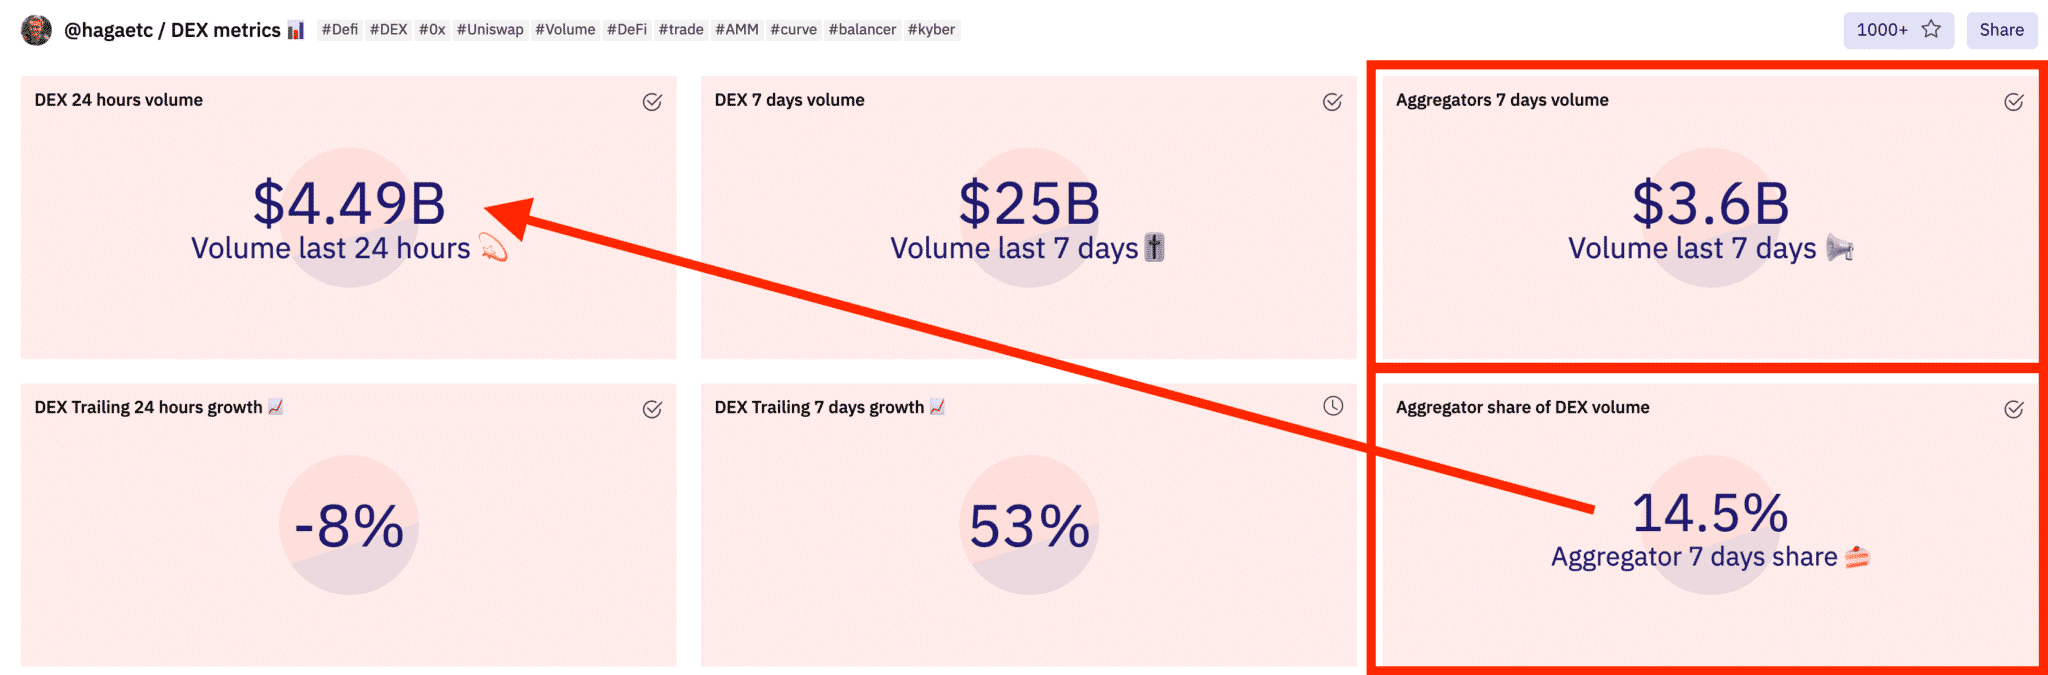 DeFi aggregators make up a growing percentage of total DEX volume (courtesy of Dune Analytics)